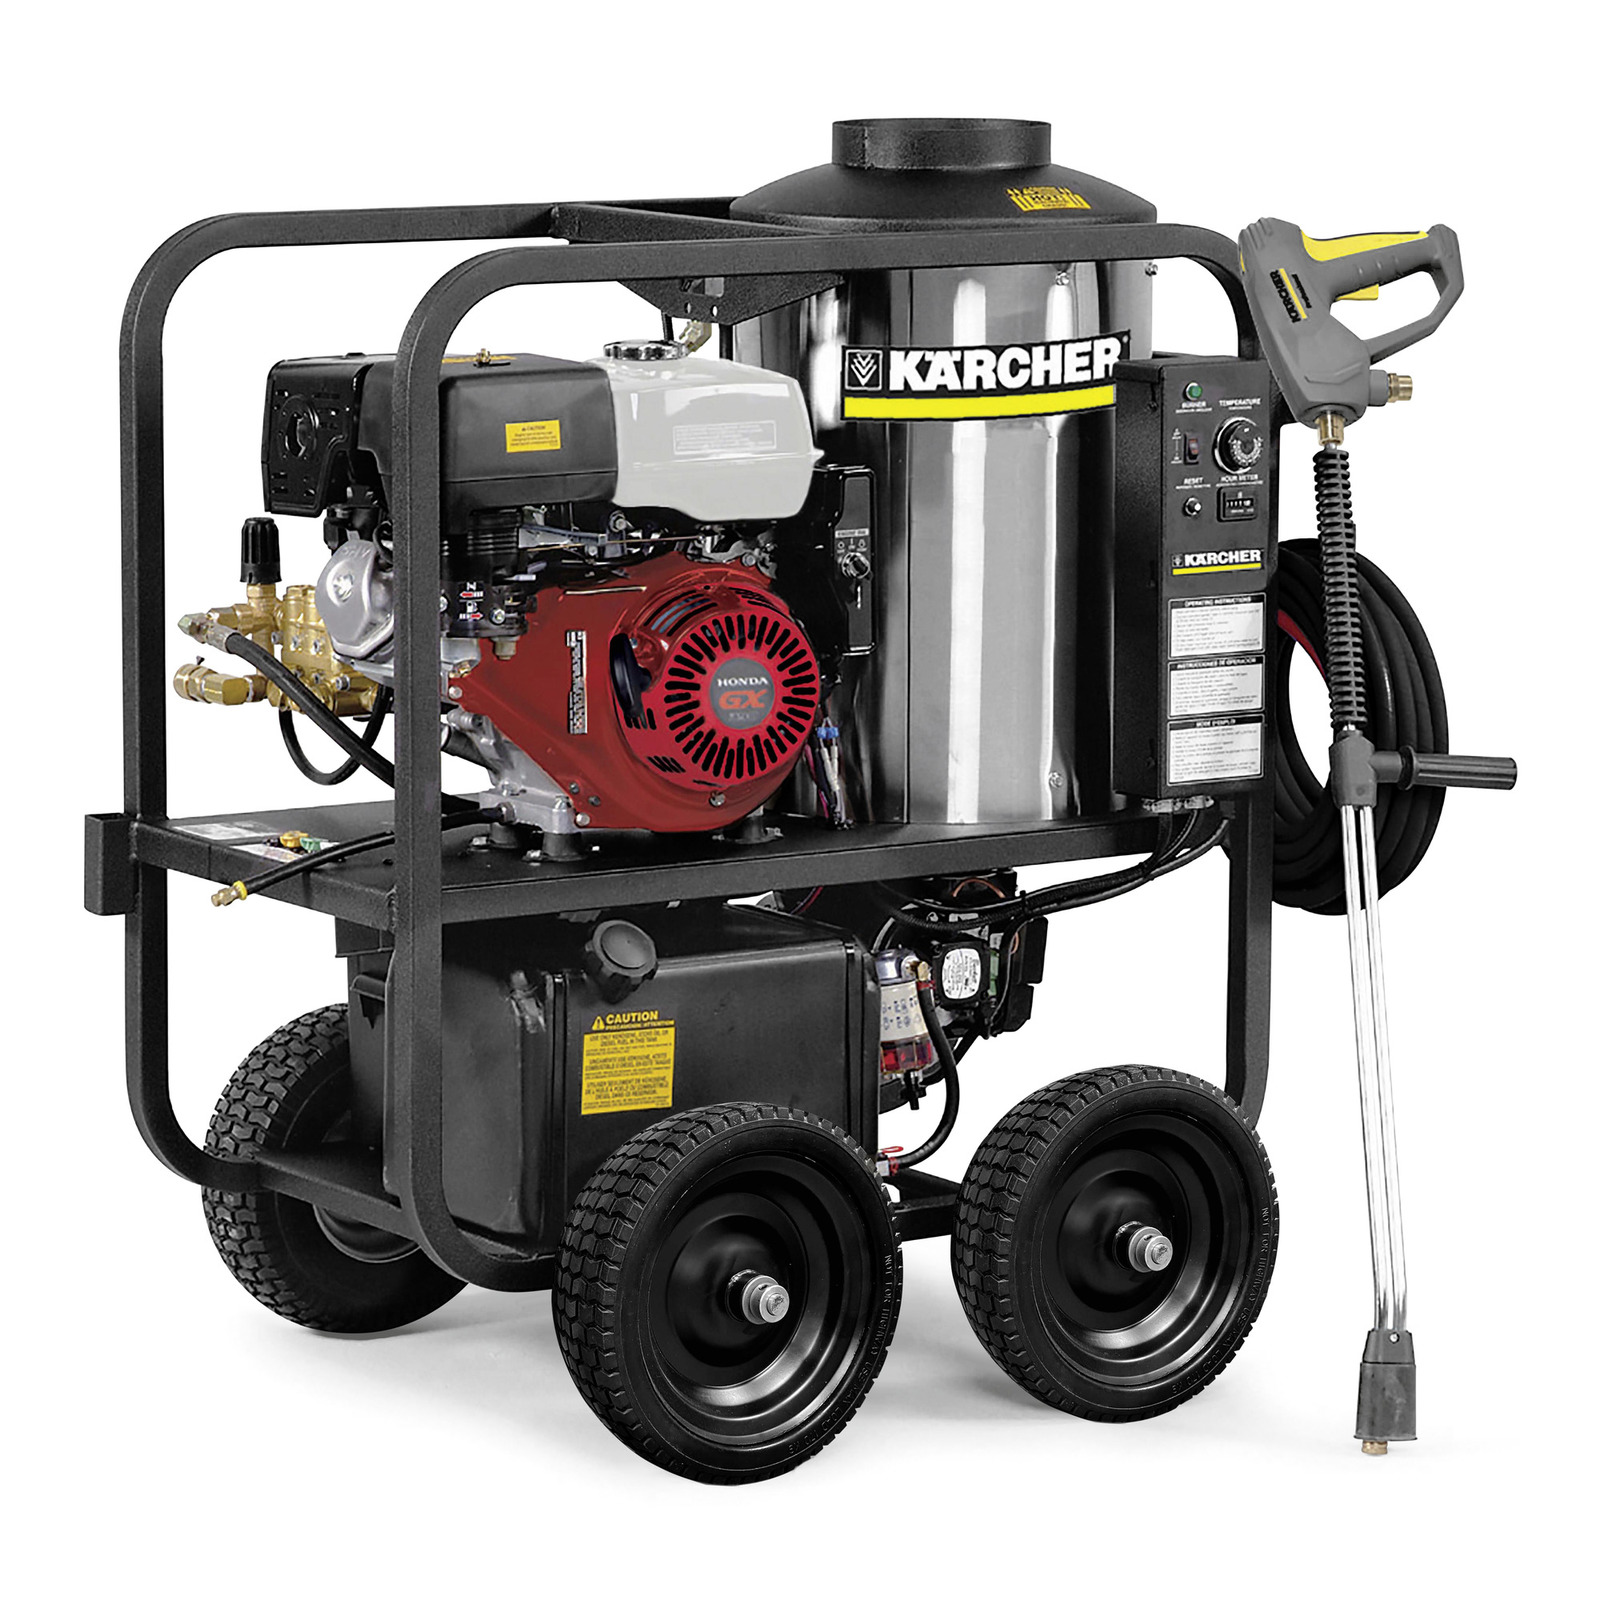 full?position=productlist&bp=md gas diesel powered hot water pressure washers karcher  at gsmx.co